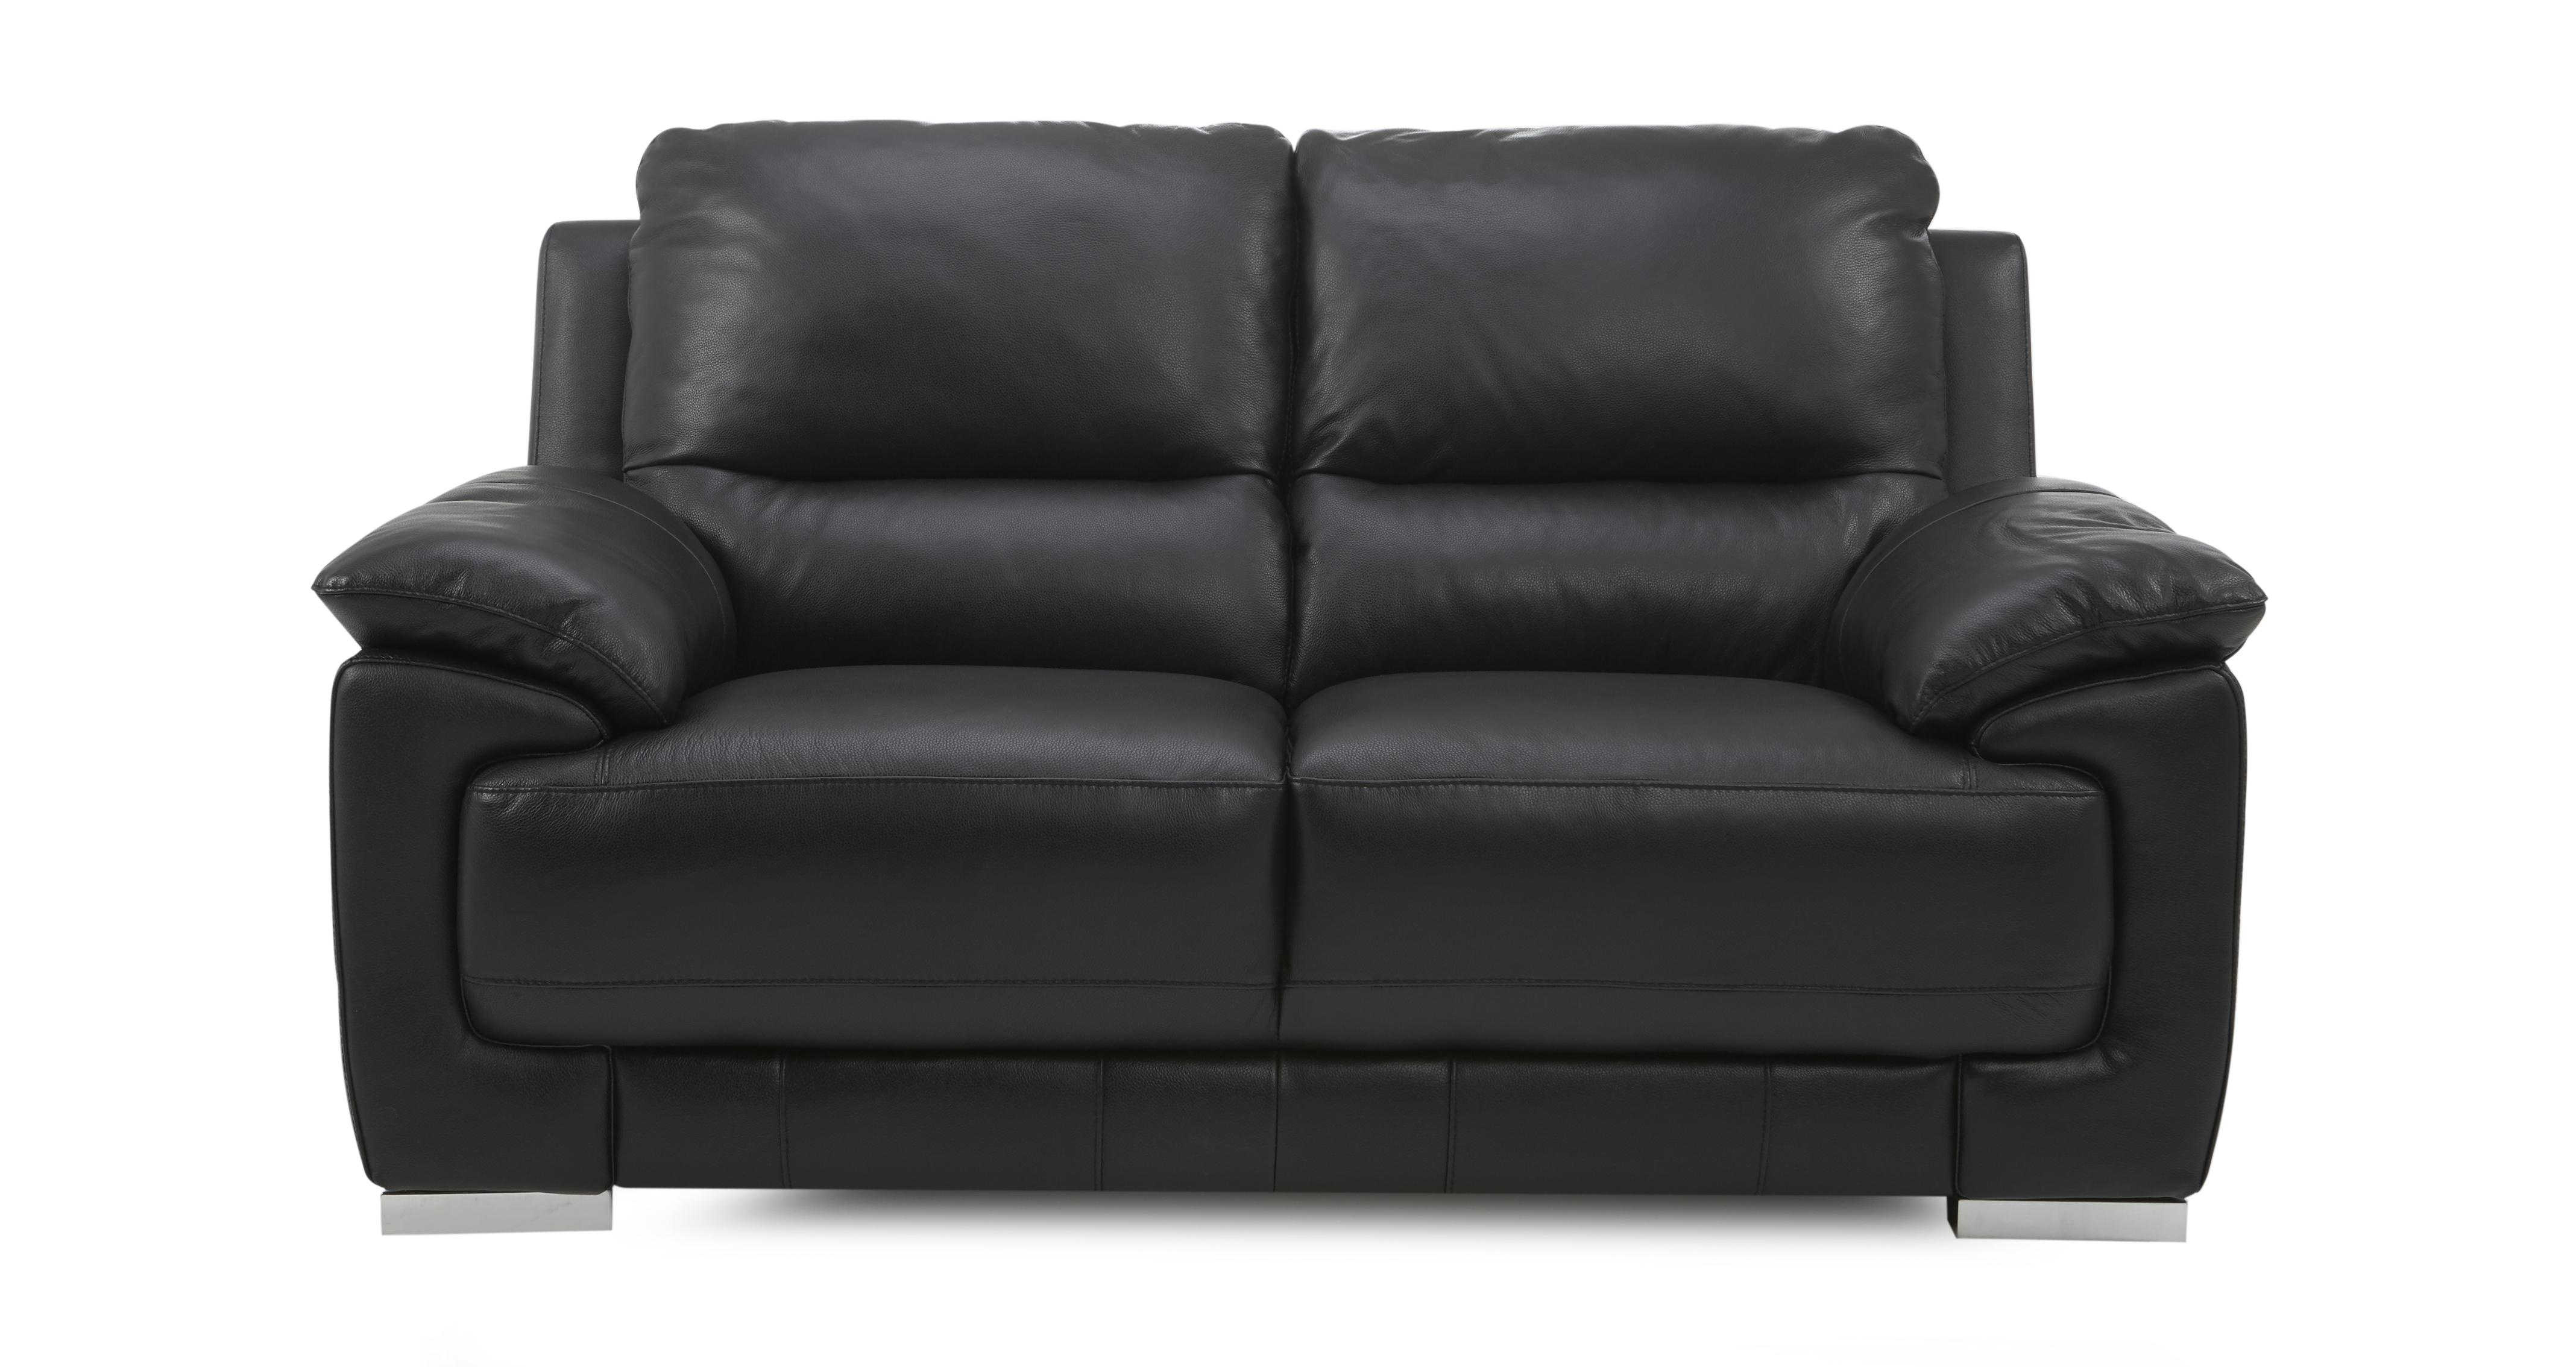 new sofas dfs sofa leather chair falcon 2 seater club